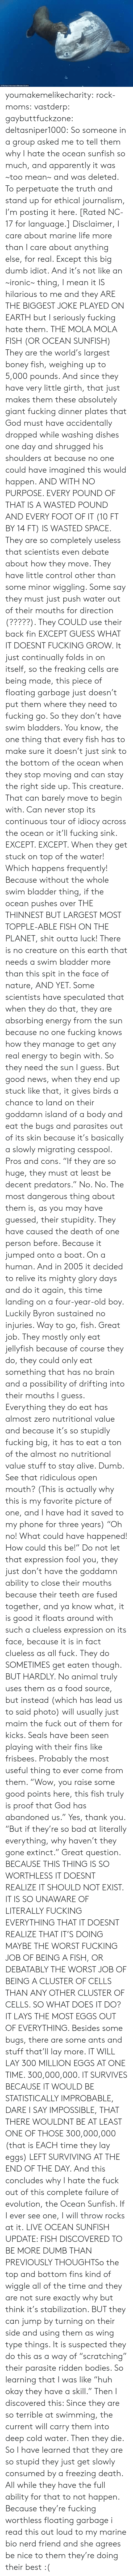 "marine: ORihad Herrma M  S youmakemelikecharity:  rock-moms:  vastderp:  gaybuttfuckzone:  deltasniper1000:  So someone in a group asked me to tell them why I hate the ocean sunfish so much, and apparently it was ~too mean~ and was deleted. To perpetuate the truth and stand up for ethical journalism, I'm posting it here. [Rated NC-17 for language.]  Disclaimer, I care about marine life more than I care about anything else, for real. Except this big dumb idiot. And it's not like an ~ironic~ thing, I mean it IS hilarious to me and they ARE THE BIGGEST JOKE PLAYED ON EARTH but I seriously fucking hate them.  THE MOLA MOLA FISH (OR OCEAN SUNFISH)  They are the world's largest boney fish, weighing up to 5,000 pounds. And since they have very little girth, that just makes them these absolutely giant fucking dinner plates that God must have accidentally dropped while washing dishes one day and shrugged his shoulders at because no one could have imagined this would happen. AND WITH NO PURPOSE. EVERY POUND OF THAT IS A WASTED POUND AND EVERY FOOT OF IT (10 FT BY 14 FT) IS WASTED SPACE.  They are so completely useless that scientists even debate about how they move. They have little control other than some minor wiggling. Some say they must just push water out of their mouths for direction (?????). They COULD use their back fin EXCEPT GUESS WHAT IT DOESNT FUCKING GROW. It just continually folds in on itself, so the freaking cells are being made, this piece of floating garbage just doesn't put them where they need to fucking go.   So they don't have swim bladders. You know, the one thing that every fish has to make sure it doesn't just sink to the bottom of the ocean when they stop moving and can stay the right side up. This creature. That can barely move to begin with. Can never stop its continuous tour of idiocy across the ocean or it'll fucking sink. EXCEPT. EXCEPT. When they get stuck on top of the water! Which happens frequently! Because without the whole swim bladder thing, if the ocean pushes over THE THINNEST BUT LARGEST MOST TOPPLE-ABLE FISH ON THE PLANET, shit outta luck! There is no creature on this earth that needs a swim bladder more than this spit in the face of nature, AND YET. Some scientists have speculated that when they do that, they are absorbing energy from the sun because no one fucking knows how they manage to get any real energy to begin with. So they need the sun I guess. But good news, when they end up stuck like that, it gives birds a chance to land on their goddamn island of a body and eat the bugs and parasites out of its skin because it's basically a slowly migrating cesspool. Pros and cons.   ""If they are so huge, they must at least be decent predators."" No. No. The most dangerous thing about them is, as you may have guessed, their stupidity. They have caused the death of one person before. Because it jumped onto a boat. On a human. And in 2005 it decided to relive its mighty glory days and do it again, this time landing on a four-year-old boy. Luckily Byron sustained no injuries. Way to go, fish. Great job.  They mostly only eat jellyfish because of course they do, they could only eat something that has no brain and a possibility of drifting into their mouths I guess. Everything they do eat has almost zero nutritional value and because it's so stupidly fucking big, it has to eat a ton of the almost no nutritional value stuff to stay alive. Dumb. See that ridiculous open mouth? (This is actually why this is my favorite picture of one, and I have had it saved to my phone for three years) ""Oh no! What could have happened! How could this be!"" Do not let that expression fool you, they just don't have the goddamn ability to close their mouths because their teeth are fused together, and ya know what, it is good it floats around with such a clueless expression on its face, because it is in fact clueless as all fuck.  They do SOMETIMES get eaten though. BUT HARDLY. No animal truly uses them as a food source, but instead (which has lead us to said photo) will usually just maim the fuck out of them for kicks. Seals have been seen playing with their fins like frisbees. Probably the most useful thing to ever come from them.   ""Wow, you raise some good points here, this fish truly is proof that God has abandoned us."" Yes, thank you. ""But if they're so bad at literally everything, why haven't they gone extinct."" Great question.   BECAUSE THIS THING IS SO WORTHLESS IT DOESNT REALIZE IT SHOULD NOT EXIST. IT IS SO UNAWARE OF LITERALLY FUCKING EVERYTHING THAT IT DOESNT REALIZE THAT IT'S DOING MAYBE THE WORST FUCKING JOB OF BEING A FISH, OR DEBATABLY THE WORST JOB OF BEING A CLUSTER OF CELLS THAN ANY OTHER CLUSTER OF CELLS. SO WHAT DOES IT DO? IT LAYS THE MOST EGGS OUT OF EVERYTHING. Besides some bugs, there are some ants and stuff that'll lay more. IT WILL LAY 300 MILLION EGGS AT ONE TIME. 300,000,000. IT SURVIVES BECAUSE IT WOULD BE STATISTICALLY IMPROBABLE, DARE I SAY IMPOSSIBLE, THAT THERE WOULDNT BE AT LEAST ONE OF THOSE 300,000,000 (that is EACH time they lay eggs) LEFT SURVIVING AT THE END OF THE DAY.   And this concludes why I hate the fuck out of this complete failure of evolution, the Ocean Sunfish. If I ever see one, I will throw rocks at it.   LIVE OCEAN SUNFISH UPDATE: FISH DISCOVERED TO BE MORE DUMB THAN PREVIOUSLY THOUGHTSo  the top and bottom fins kind of wiggle all of the time and they are not  sure exactly why but think it's stabilization. BUT they can jump by  turning on their side and using them as  wing type things. It is suspected they do this as a way of ""scratching""  their parasite ridden bodies. So learning that I was like ""huh okay they  have a skill."" Then I discovered this: Since they  are so terrible at swimming, the current will carry them into deep cold  water. Then they die. So I have learned that they are so stupid they  just get slowly consumed by a freezing death. All while they have the  full ability for that to not happen. Because they're fucking worthless  floating garbage    i read this out loud to my marine bio nerd friend and she agrees   be nice to them they're doing their best :("